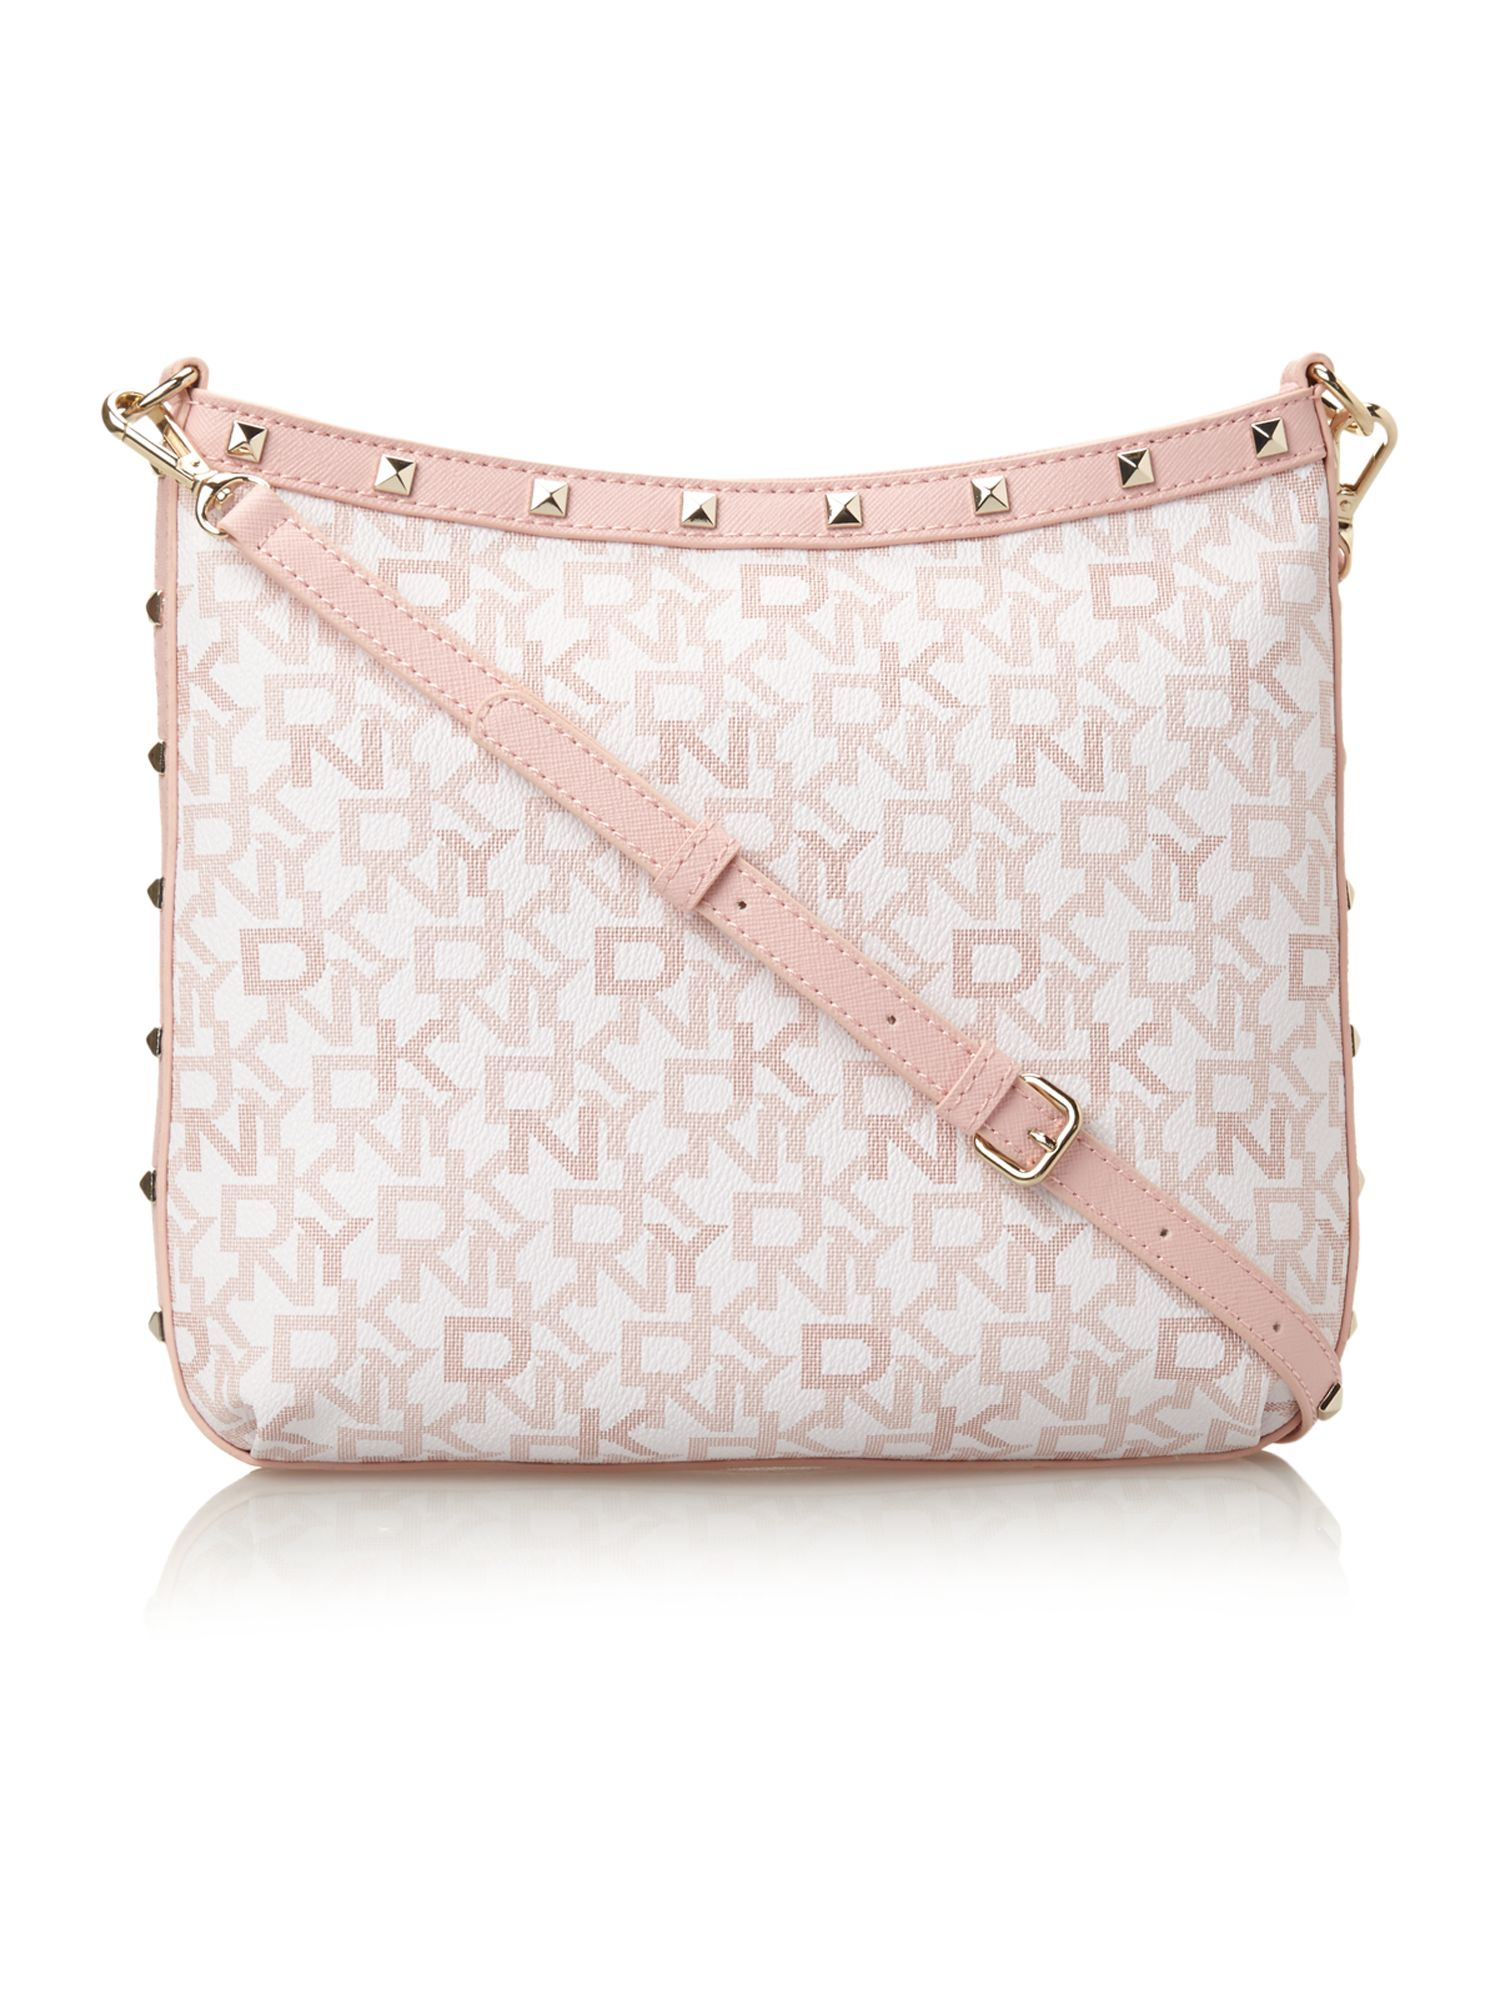 Coated logo pink crossbody bag